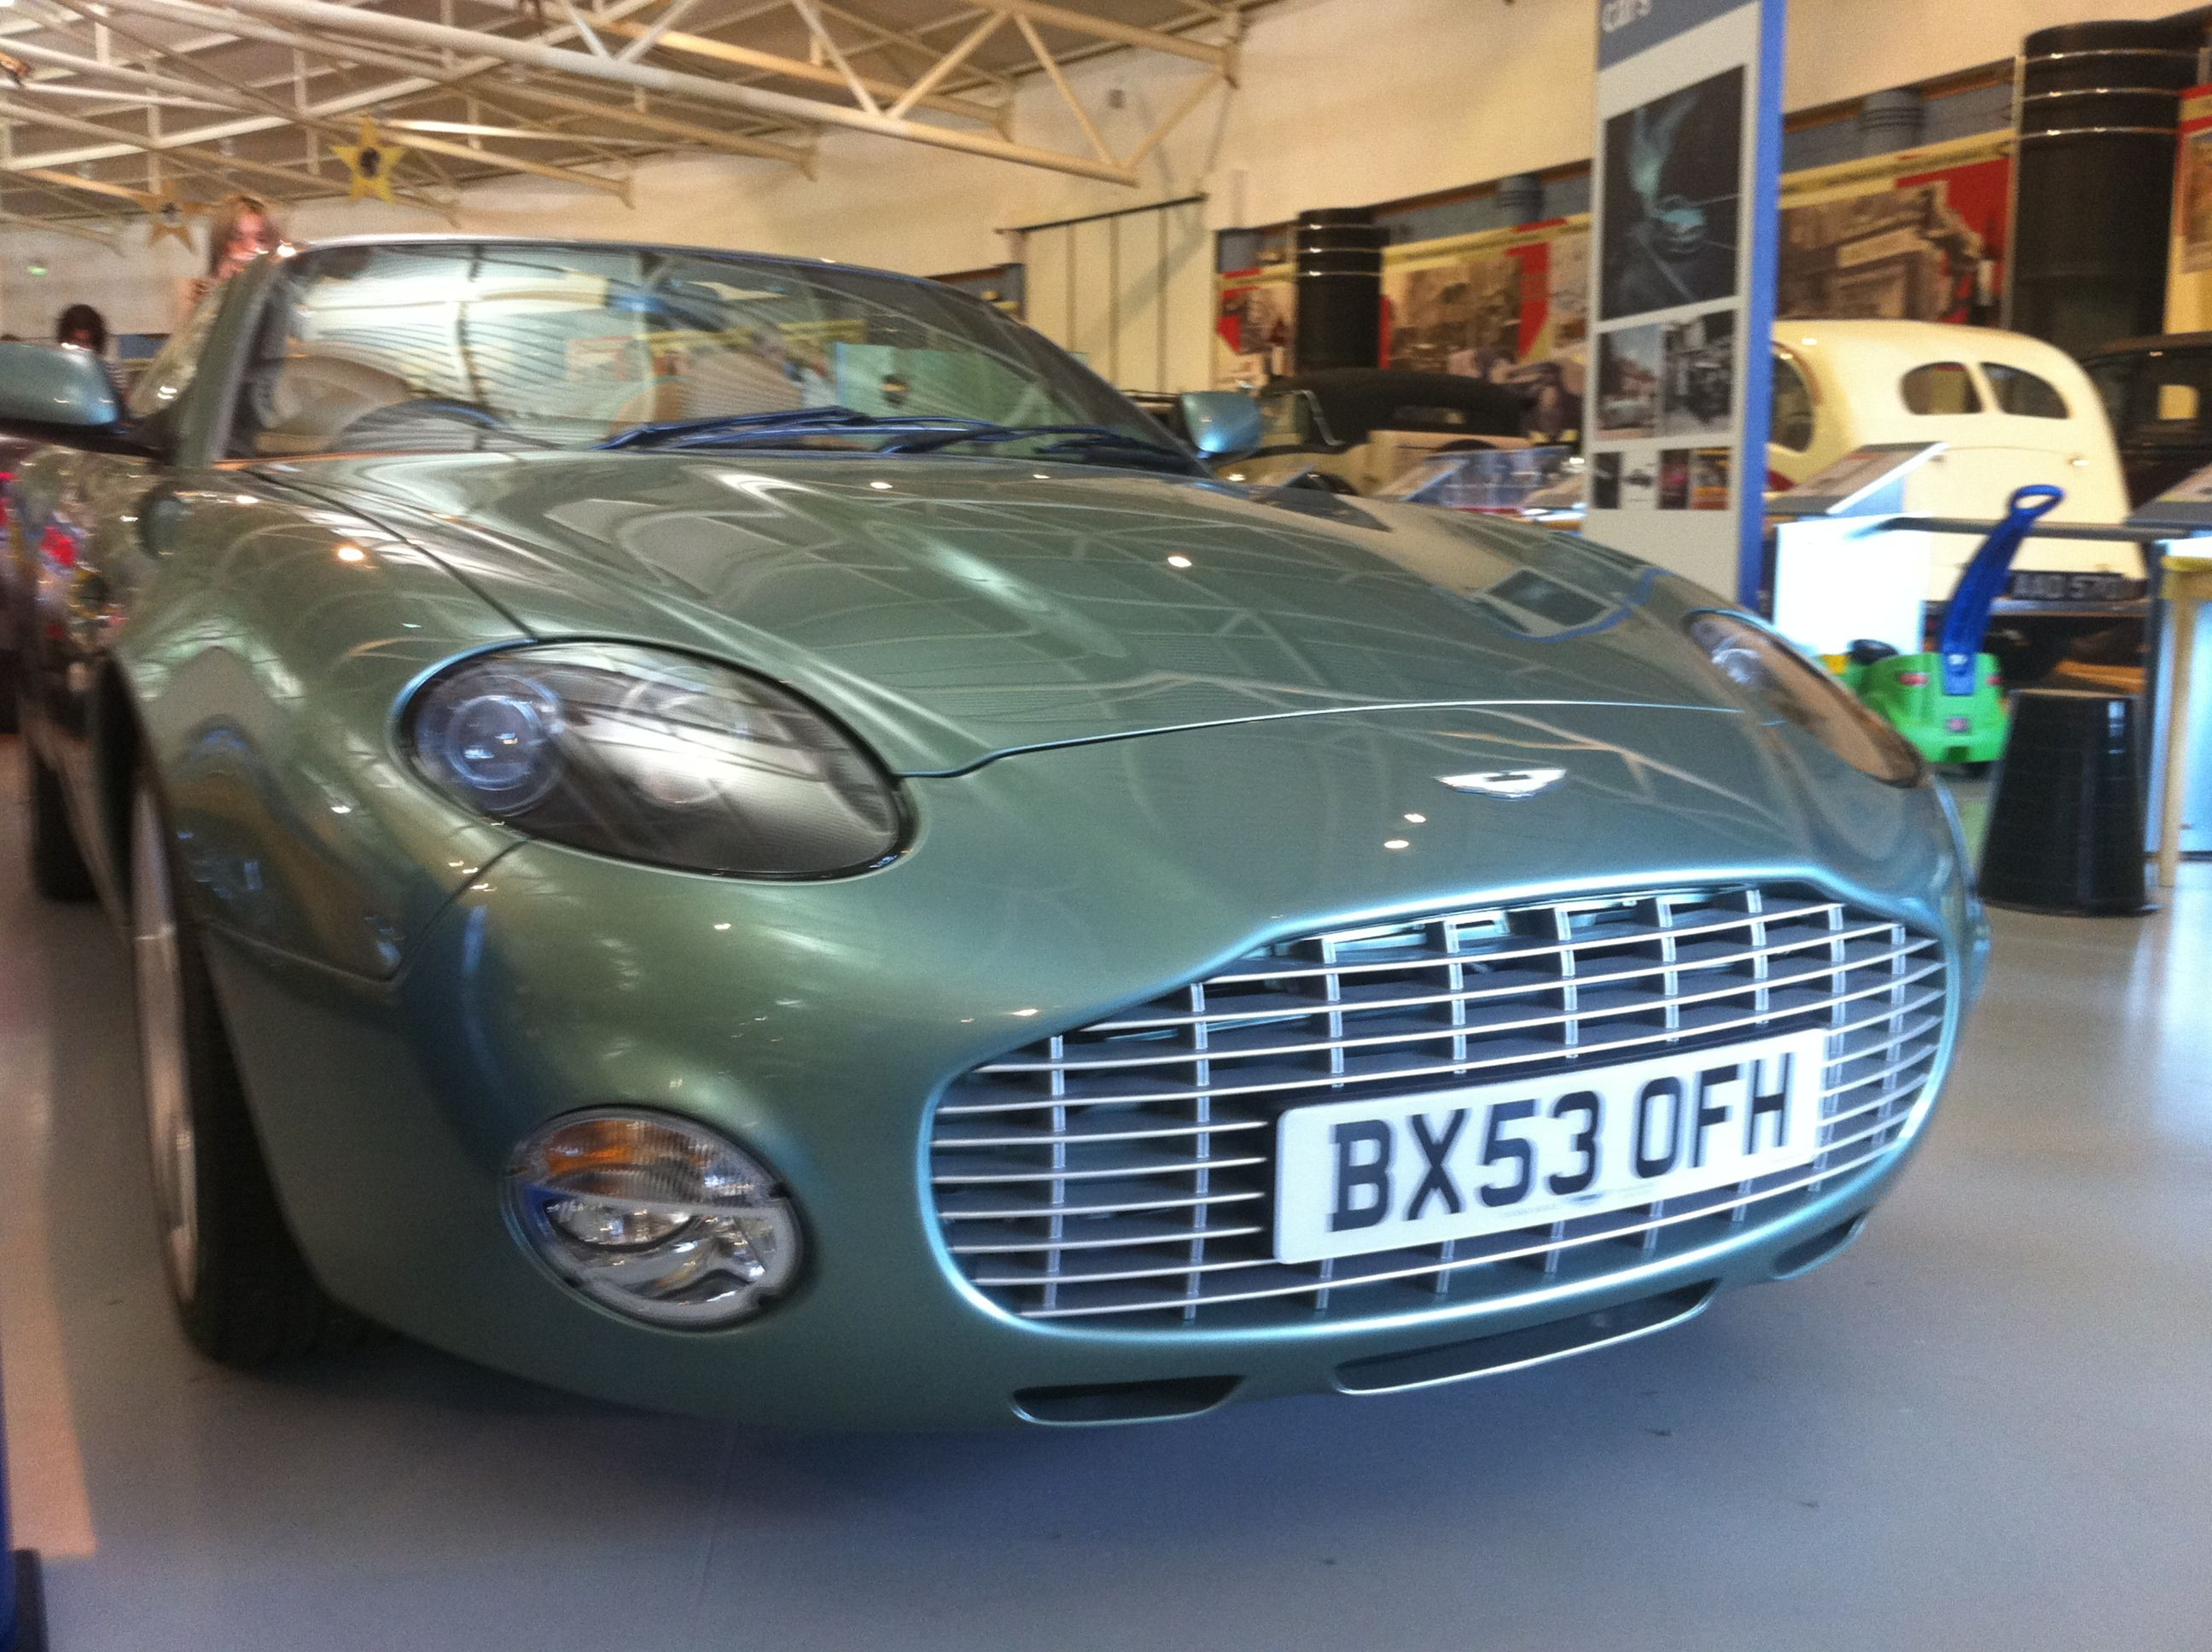 db7 zagato | cars with style | pinterest | cars